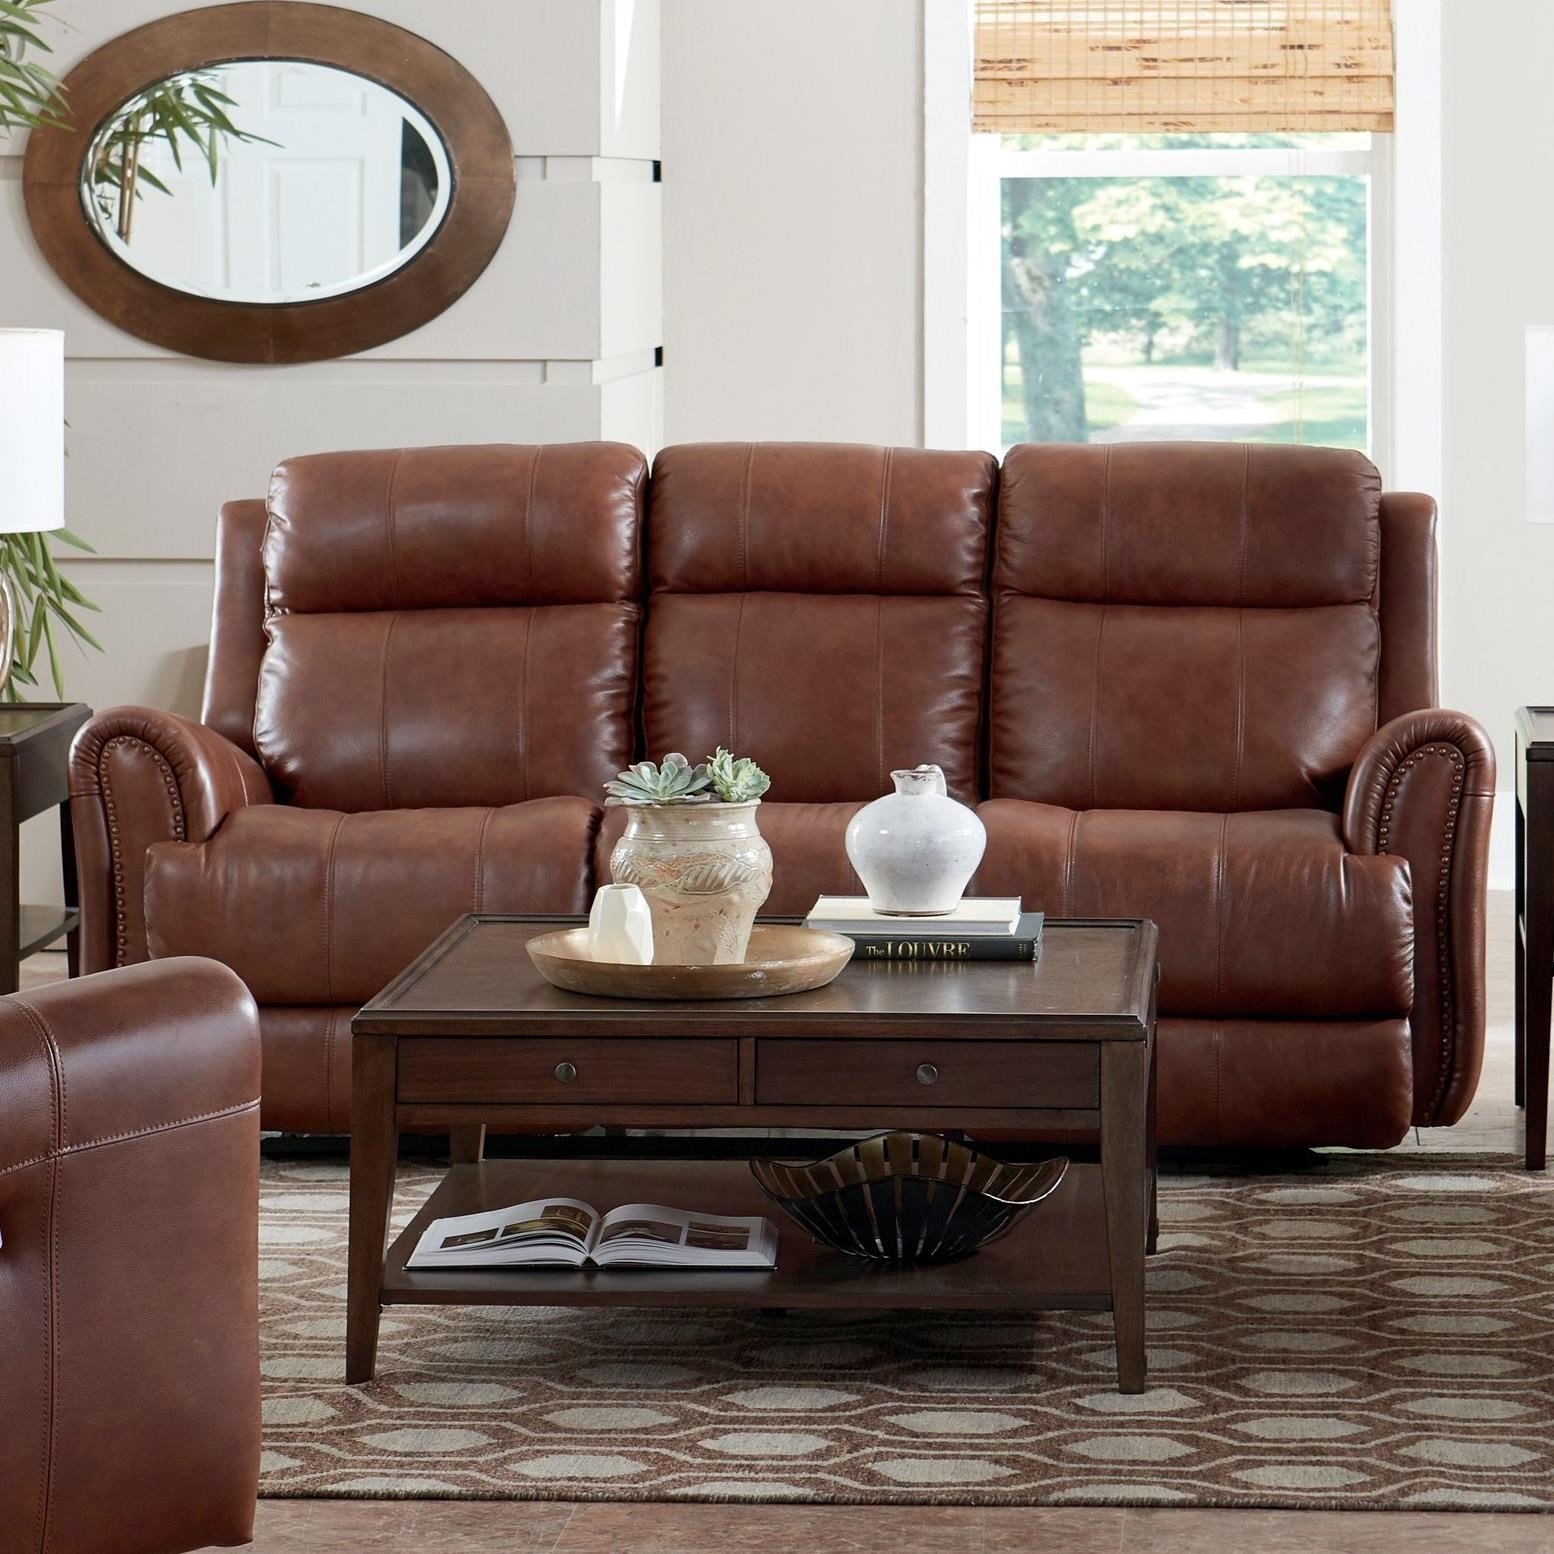 Picture of: Bassett Marquee Club Level 3707 P62u Leather Match Power Reclining Sofa With Extended Footrests Becker Furniture Reclining Sofas